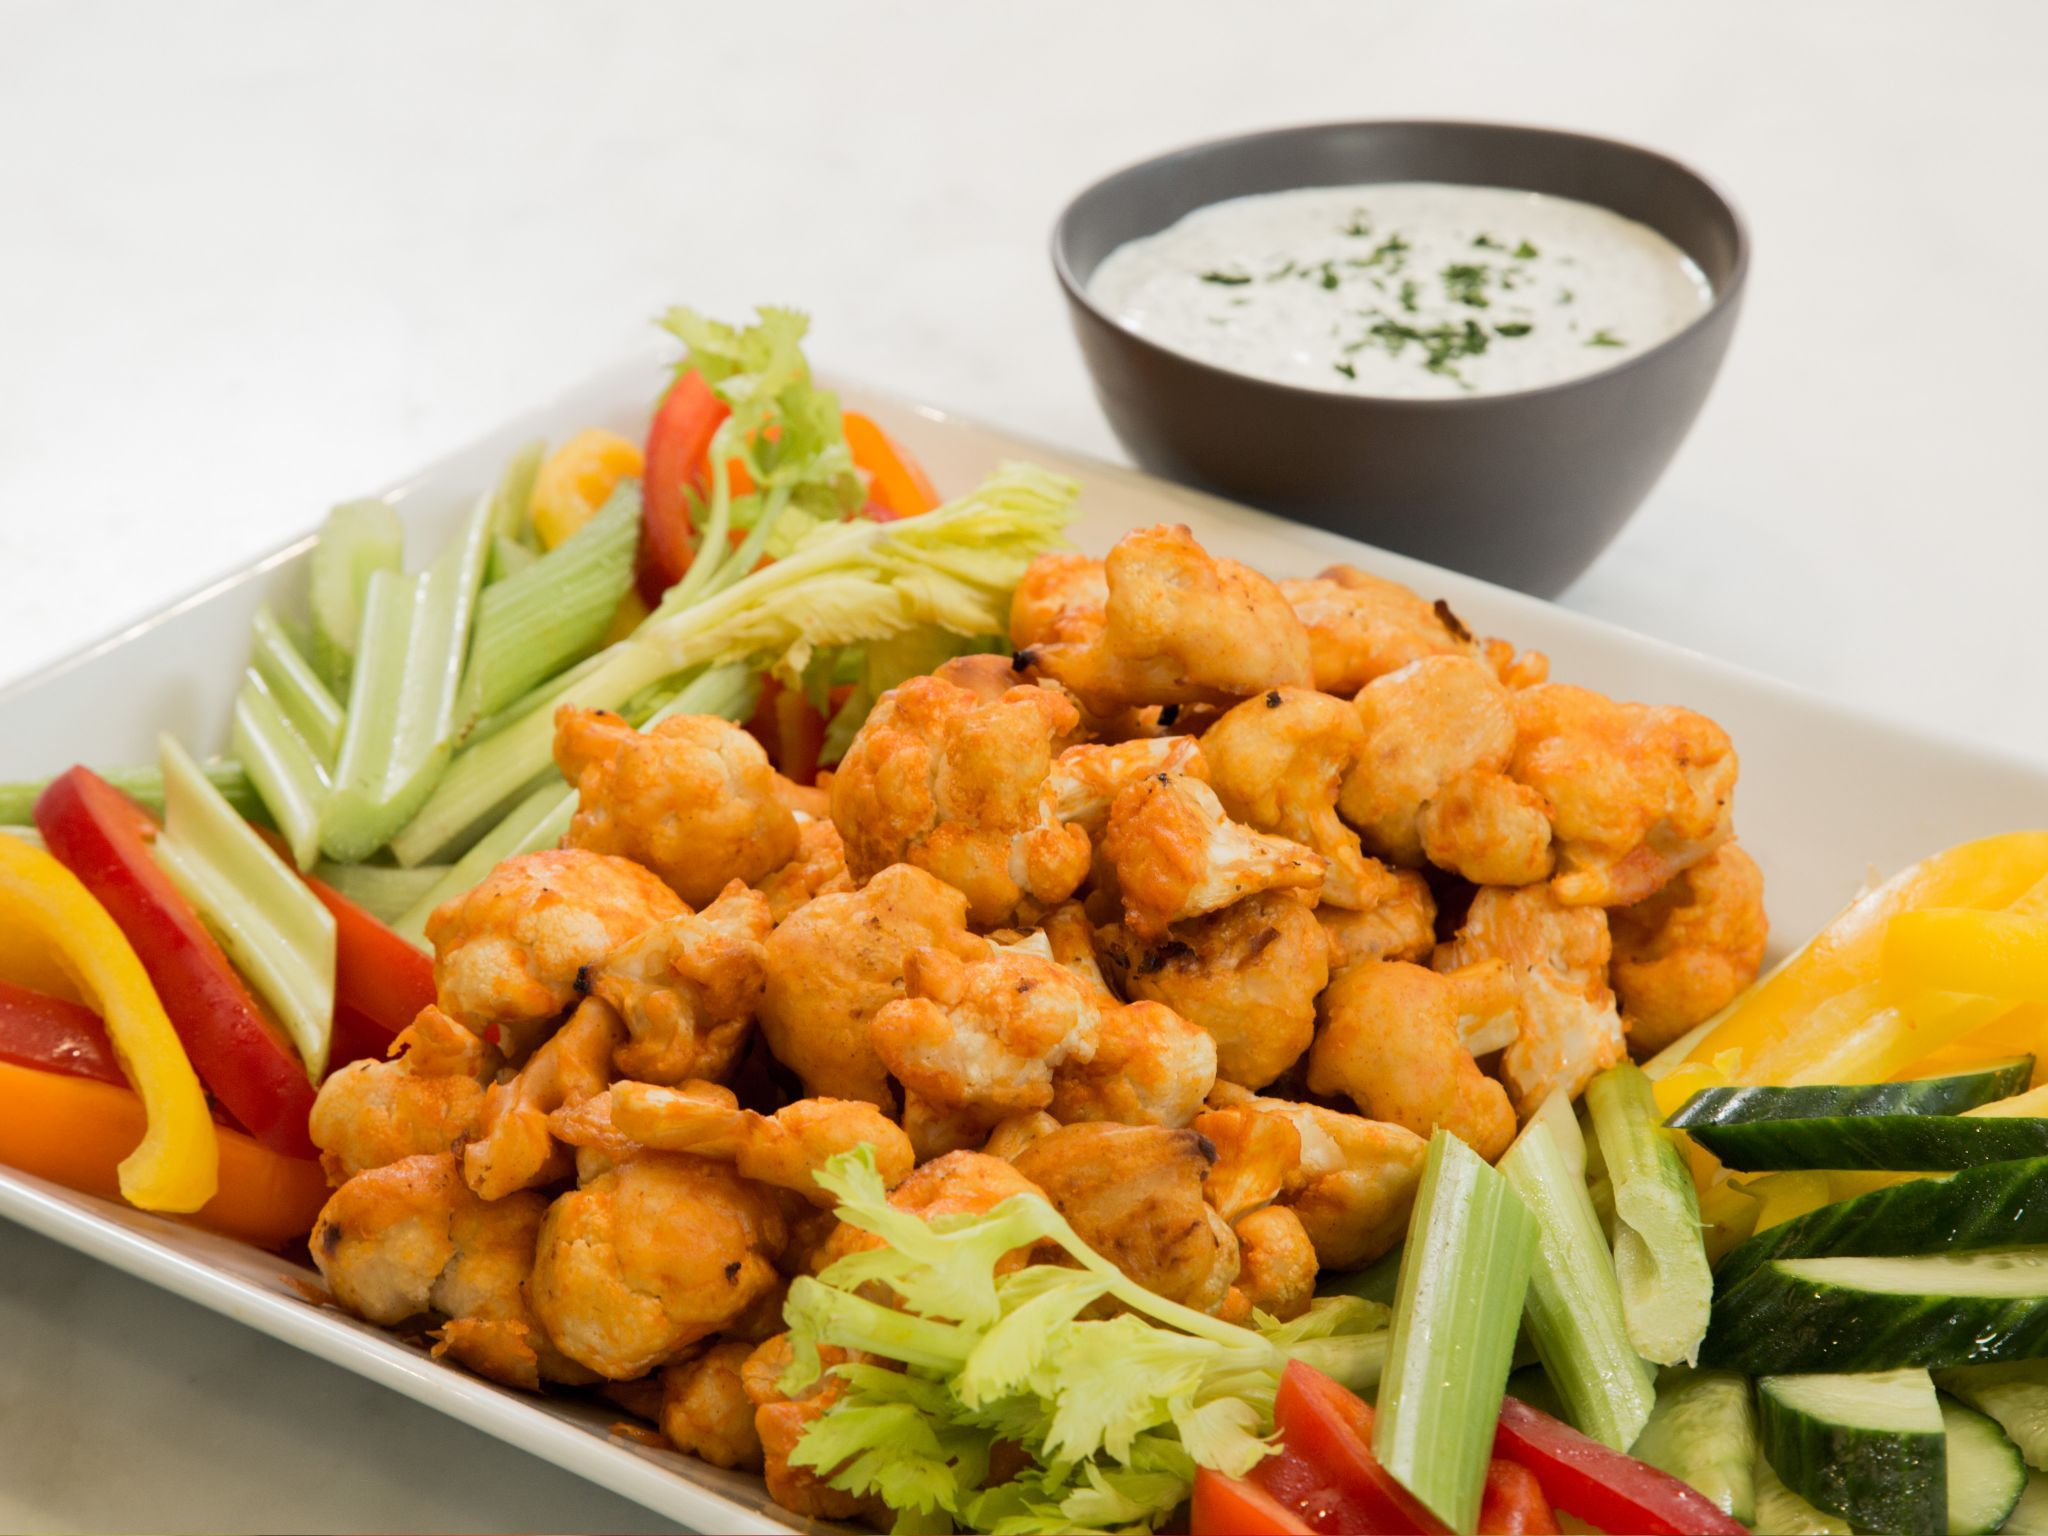 Cauliflower hot wings with buttermilk ranch dipping sauce receta cauliflower hot wings with buttermilk ranch dipping sauce receta comida y recetas forumfinder Images